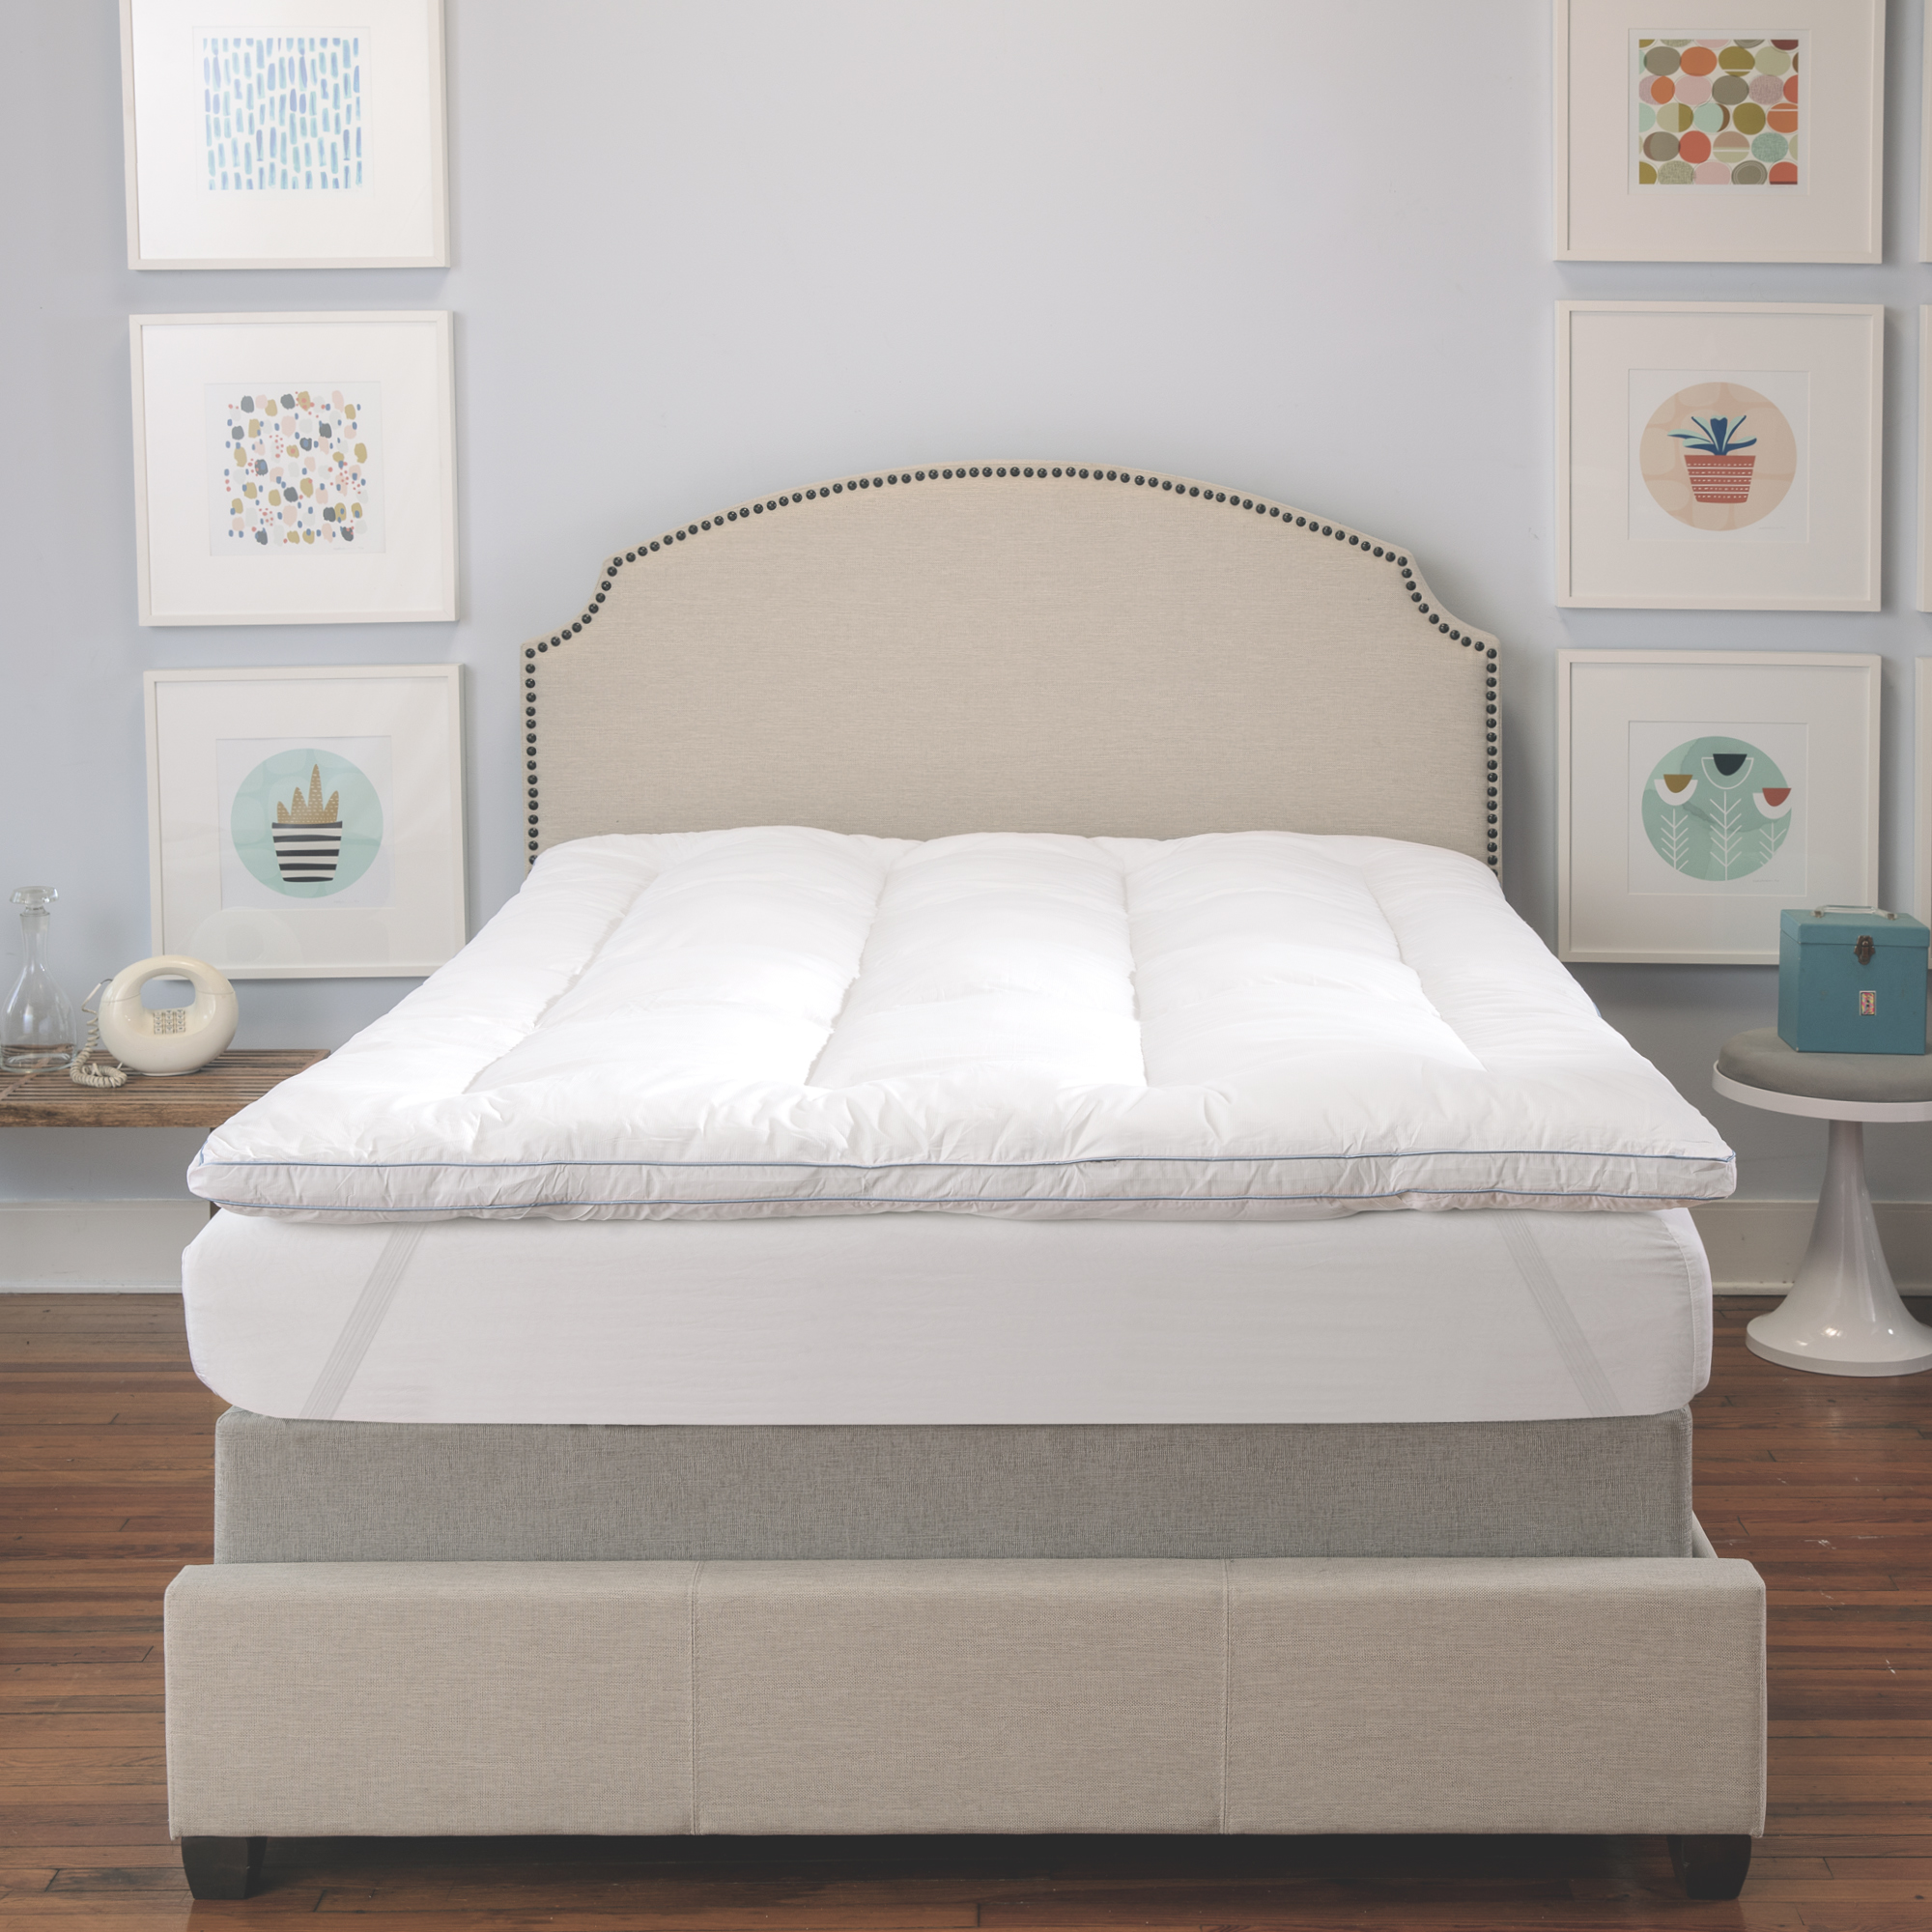 Biopedic Memory Plus Deluxe Foam And Fiber Queen